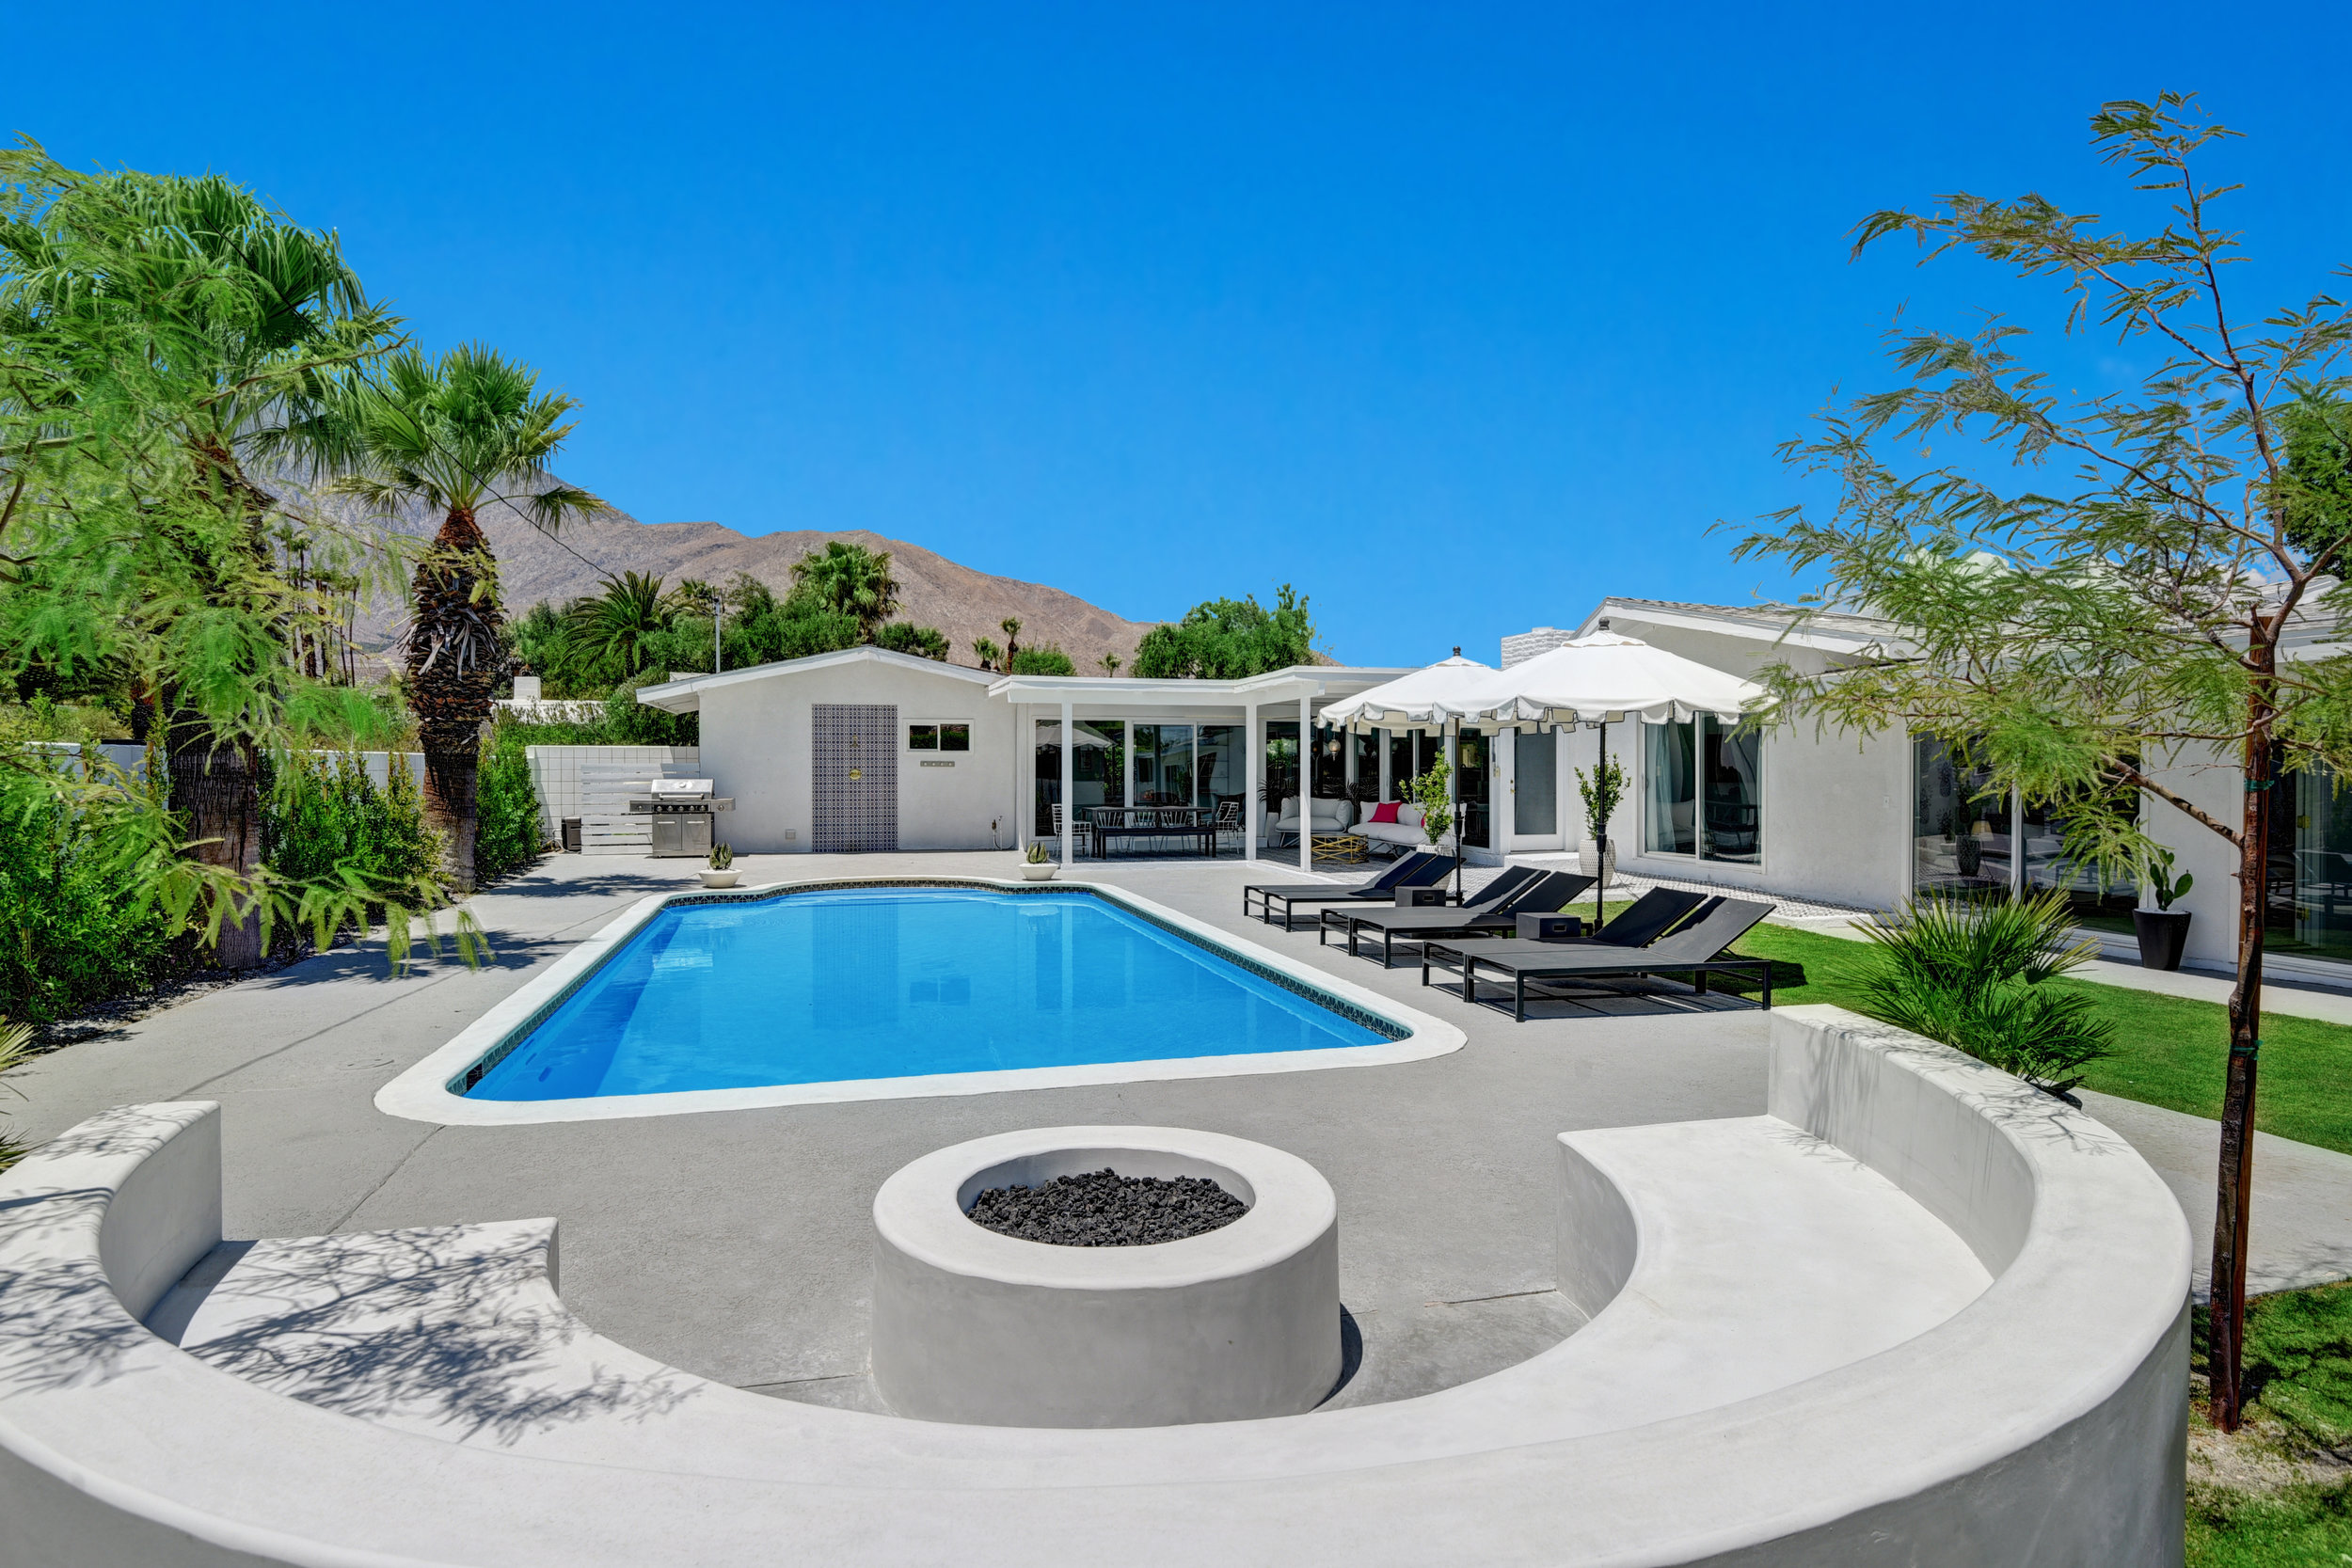 FIRE PIT TO POOL HOUSE AND MOUNTAINS.jpg